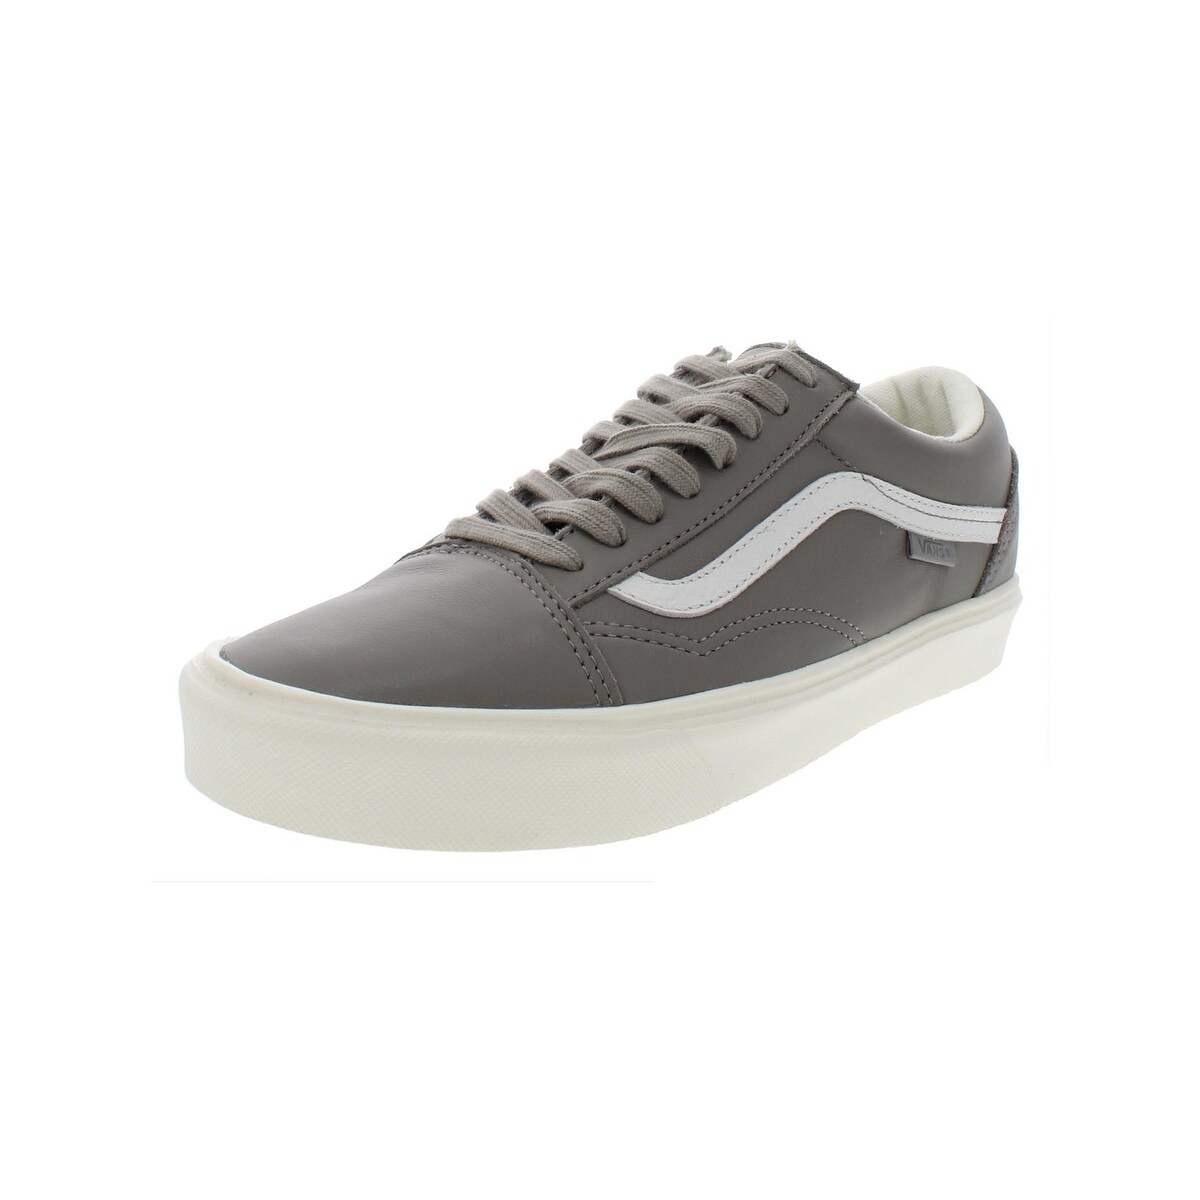 674ea7985c Grey Vans Shoes | Shop our Best Clothing & Shoes Deals Online at Overstock